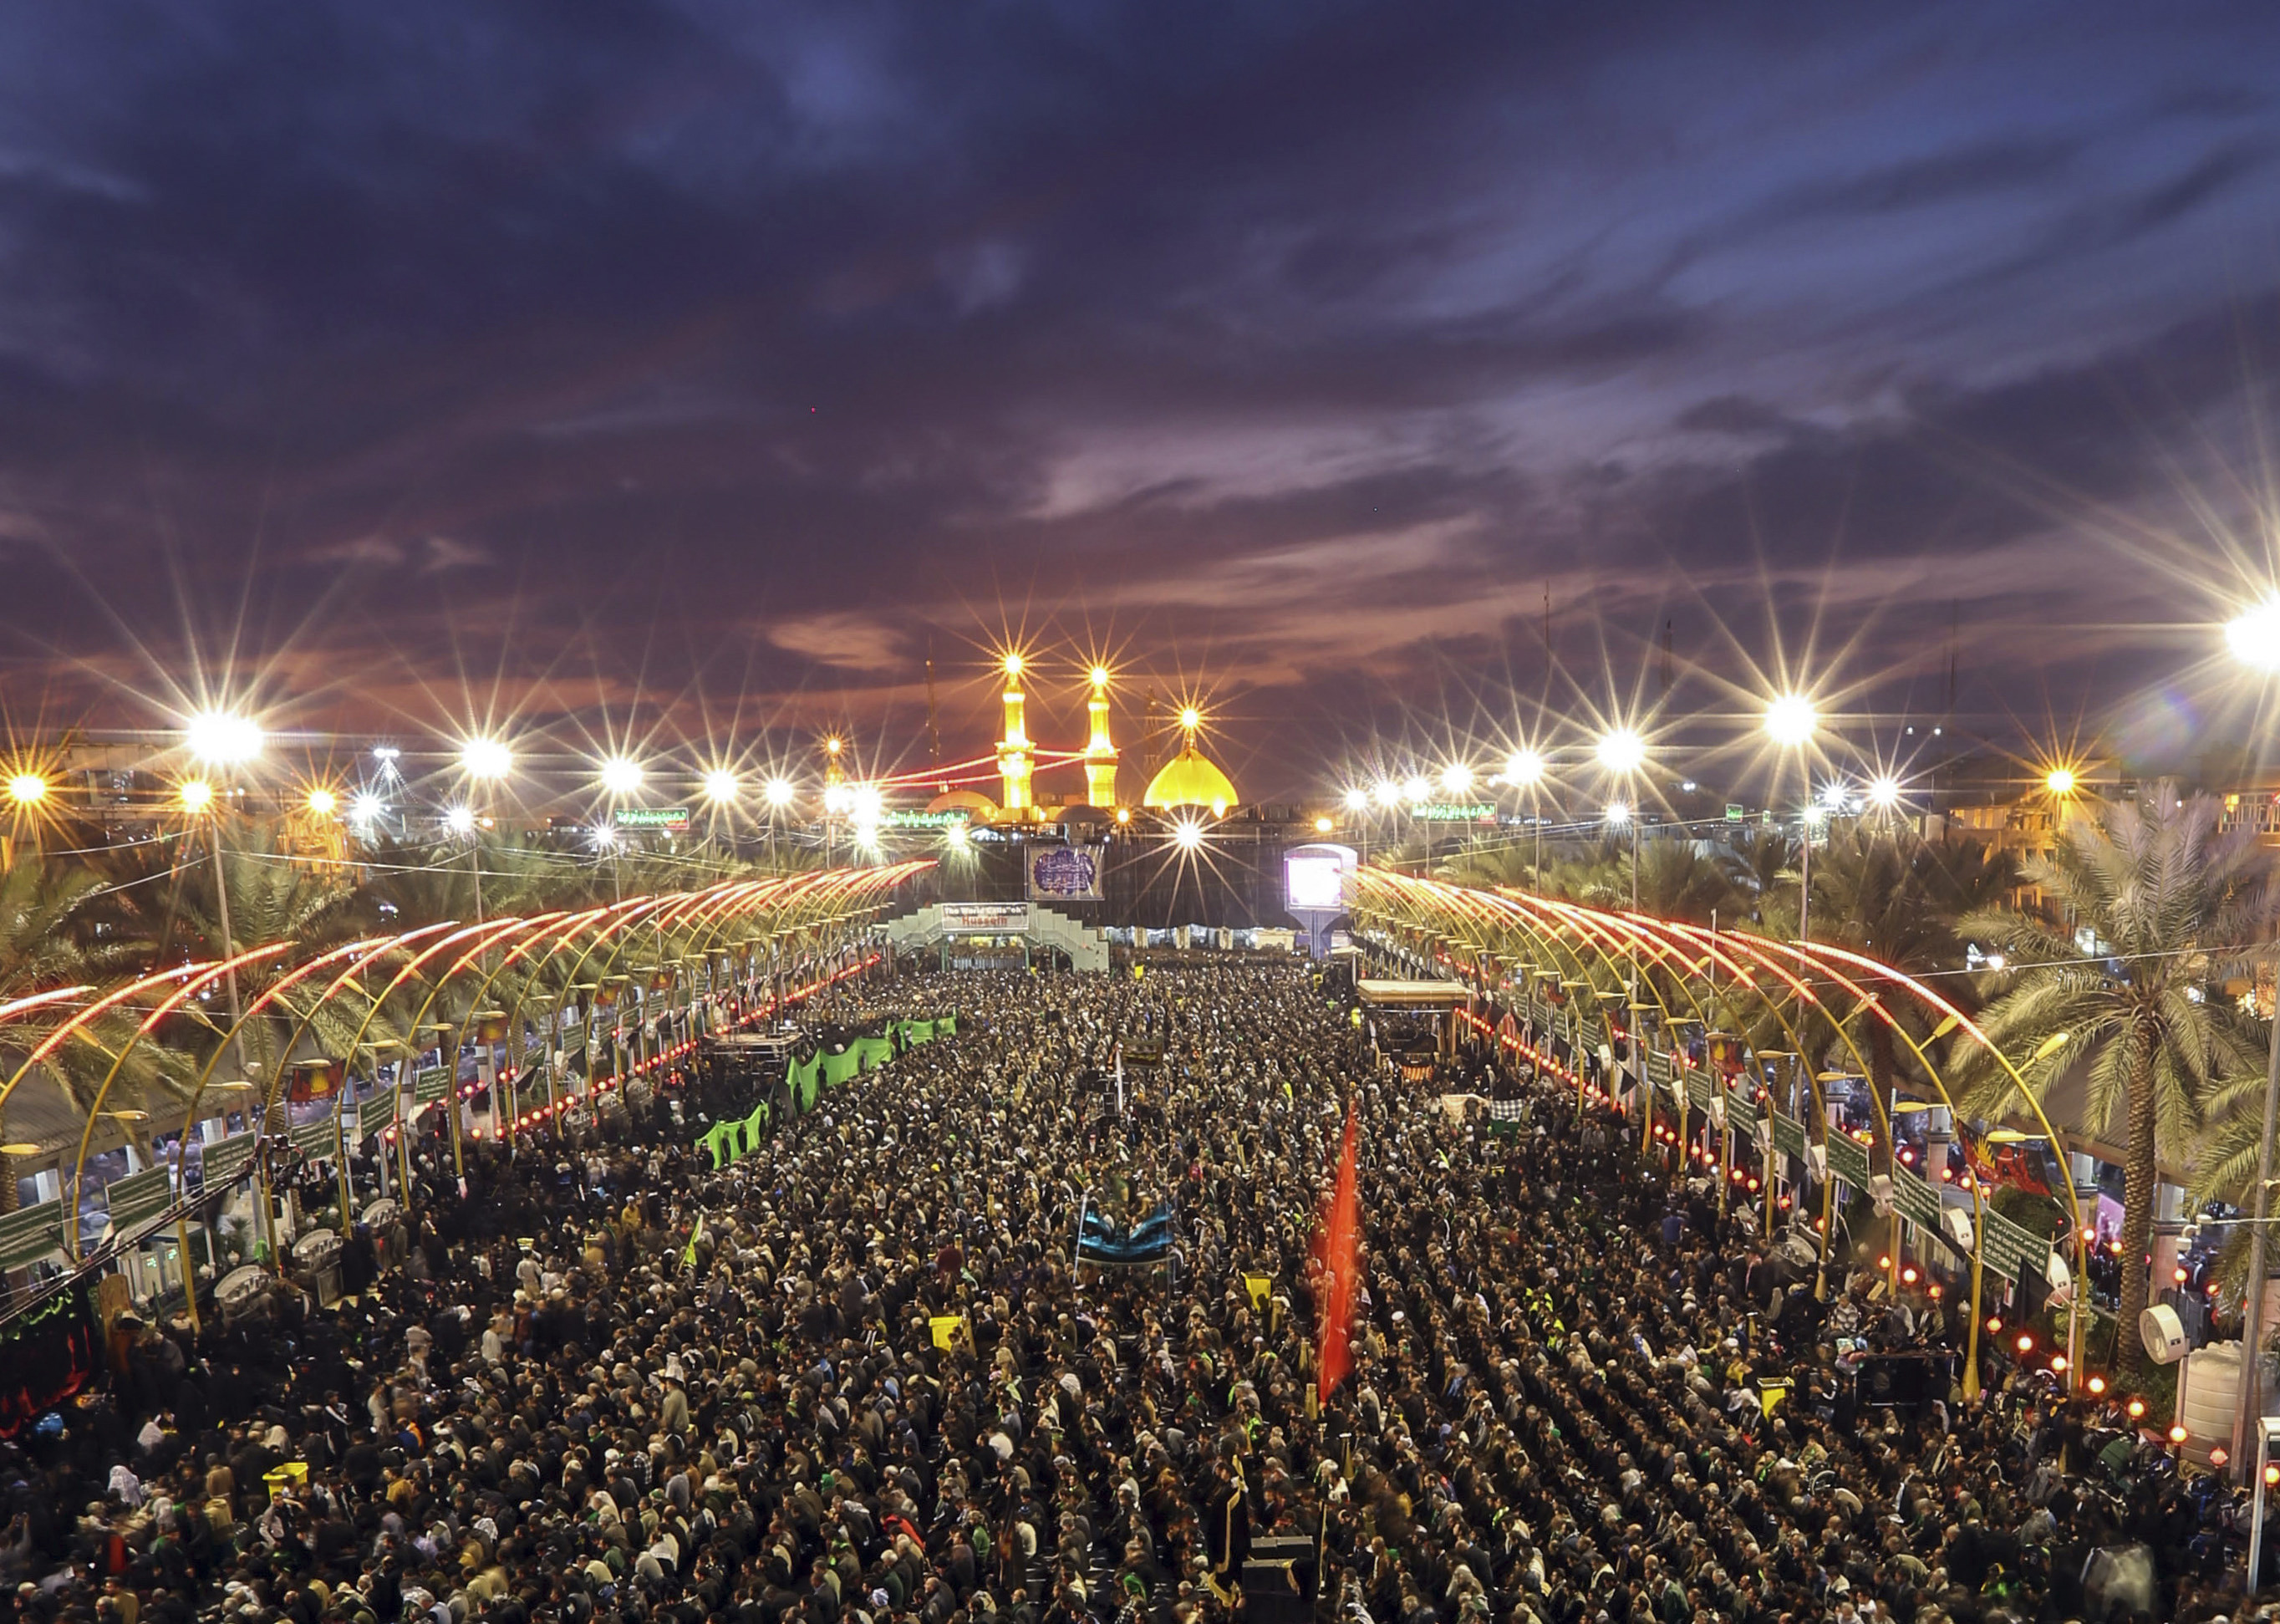 Shiite faithful pilgrims gather between the holy shrine of Imam Hussein and the holy shrine of Imam Abbas, in the background, during the preparations for the Muslim festival of Arbaeen in the Shiite holy city of Karbala, 50 miles (80 kilometers) south of Baghdad, Iraq, Friday, Dec. 12, 2014. The holiday marks the end of the 40-day mourning period after the anniversary of the 7th century martyrdom of Imam Hussein, the Prophet Muhammad's grandson. (AP Photo/Hadi Mizban)